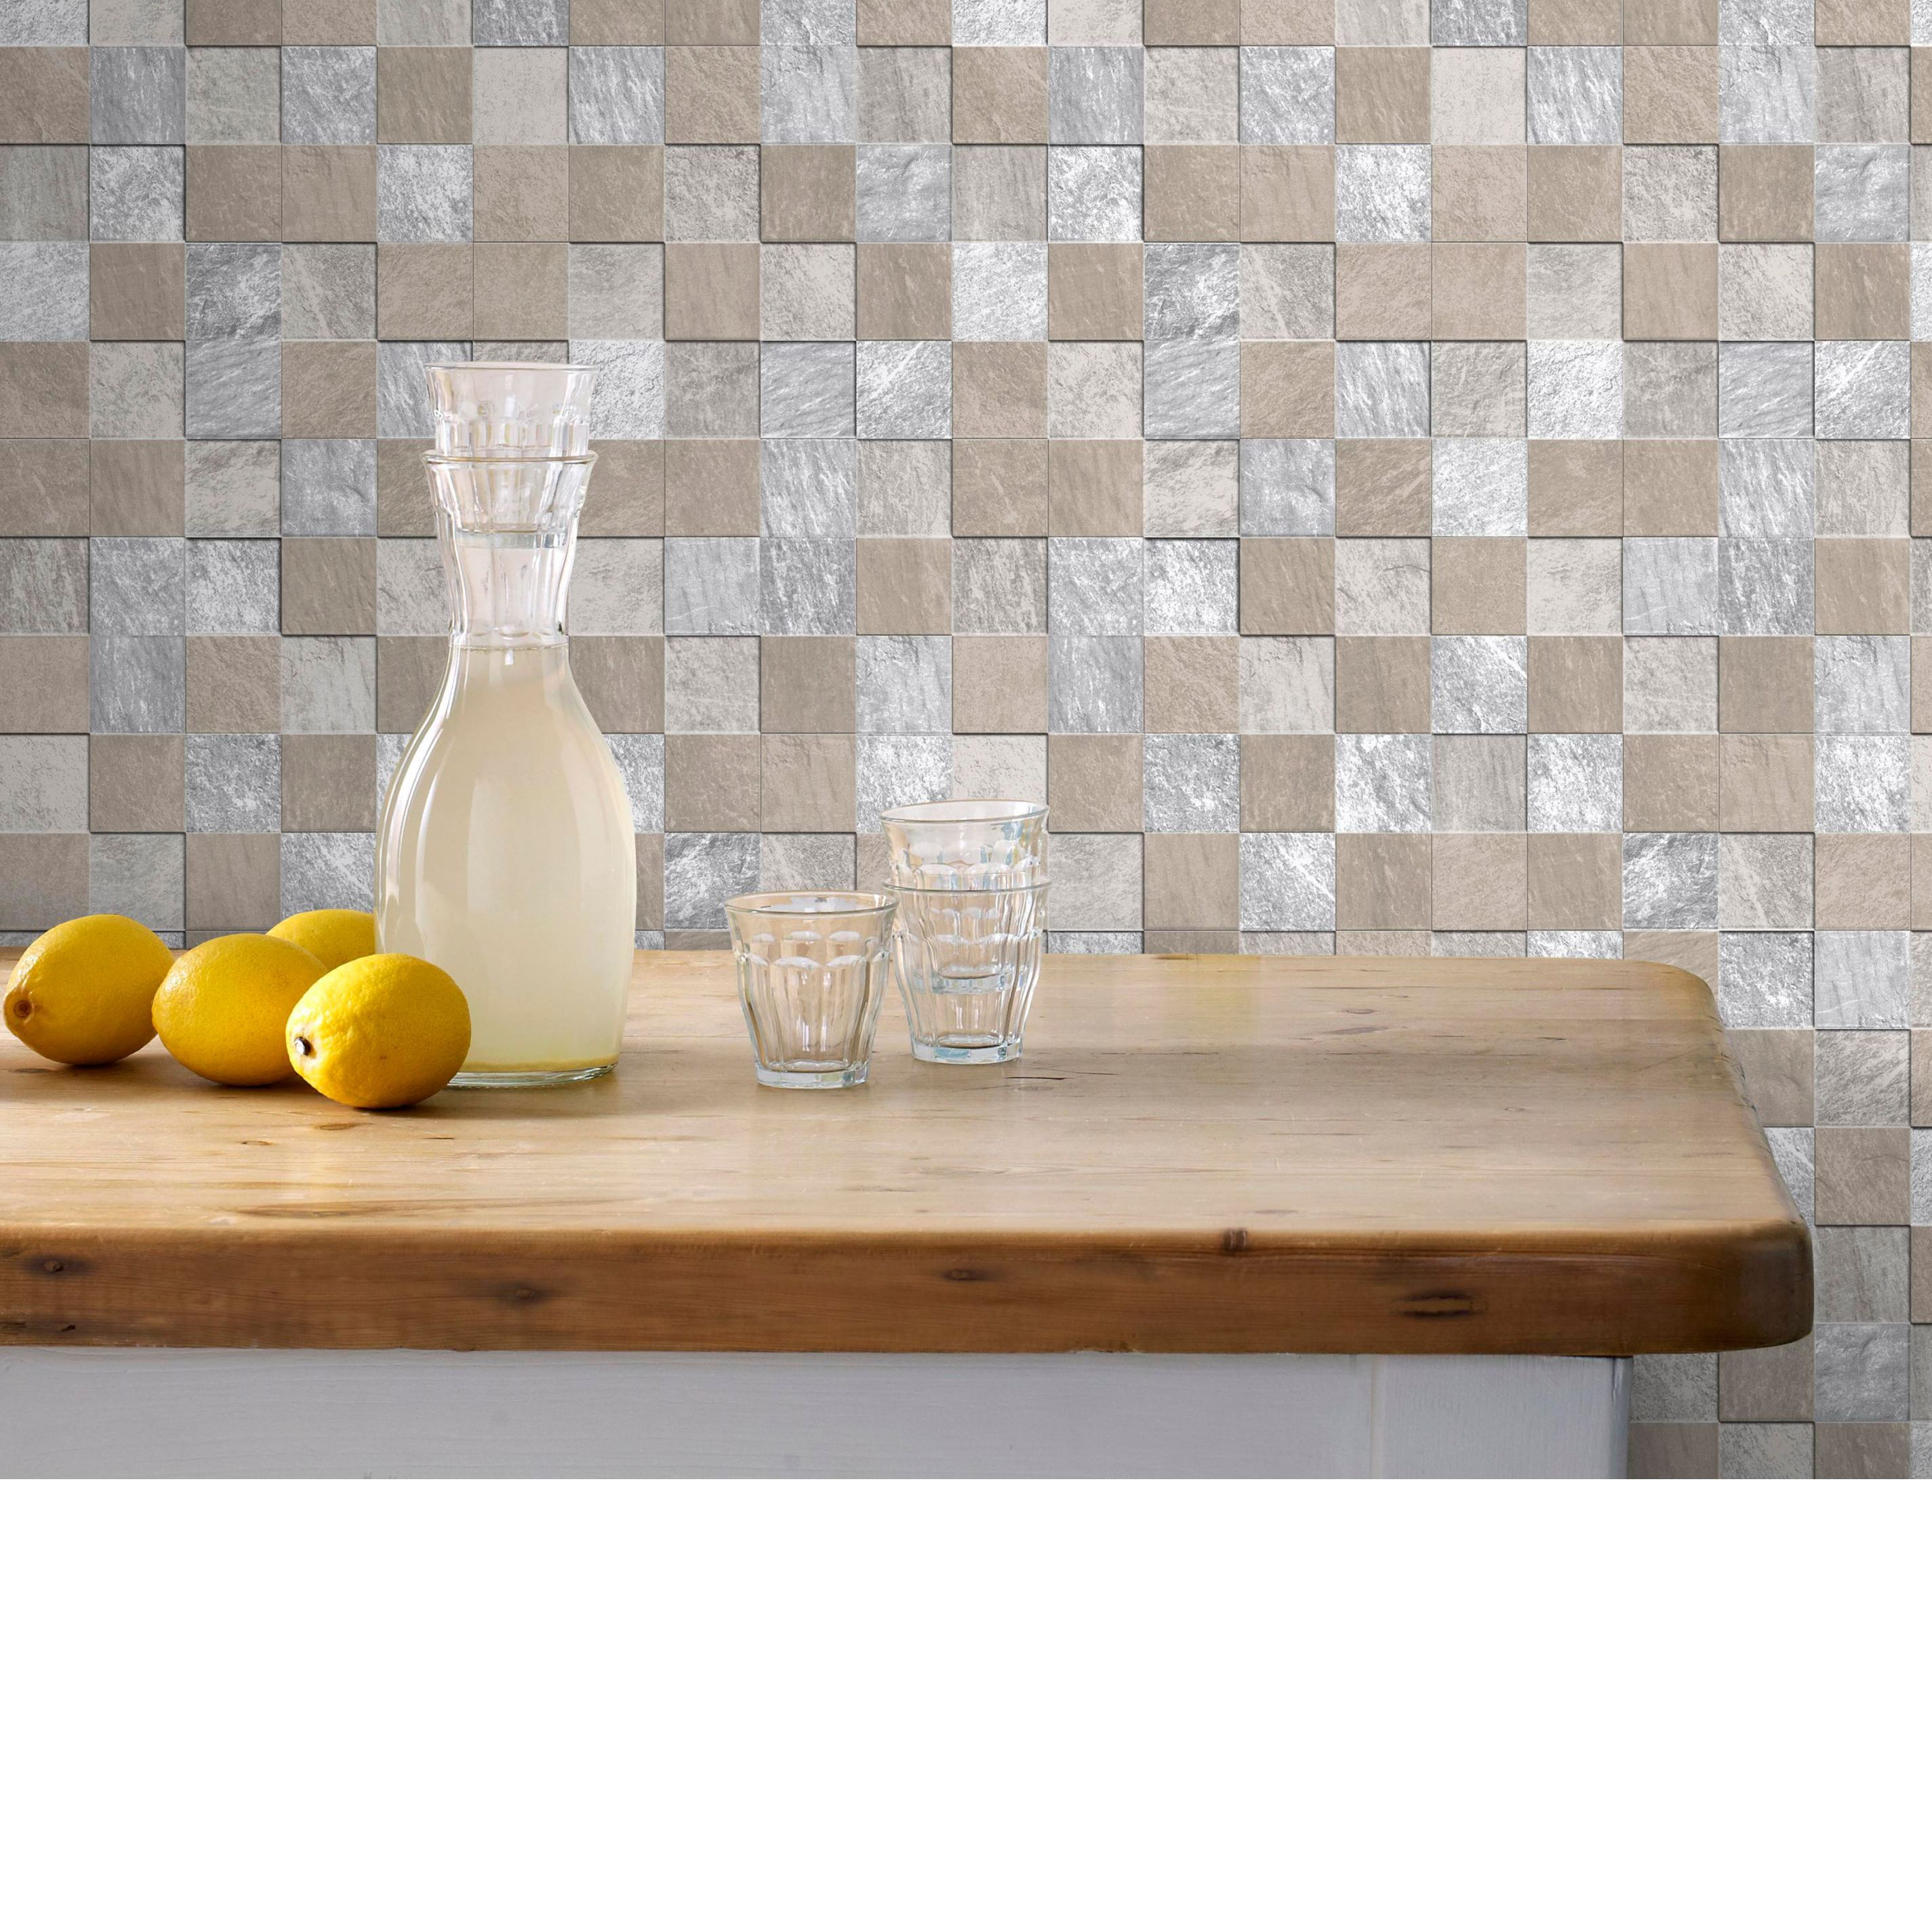 Contour Aurora Wallpaper From B Q: Buyer's Guide To Wallpaper